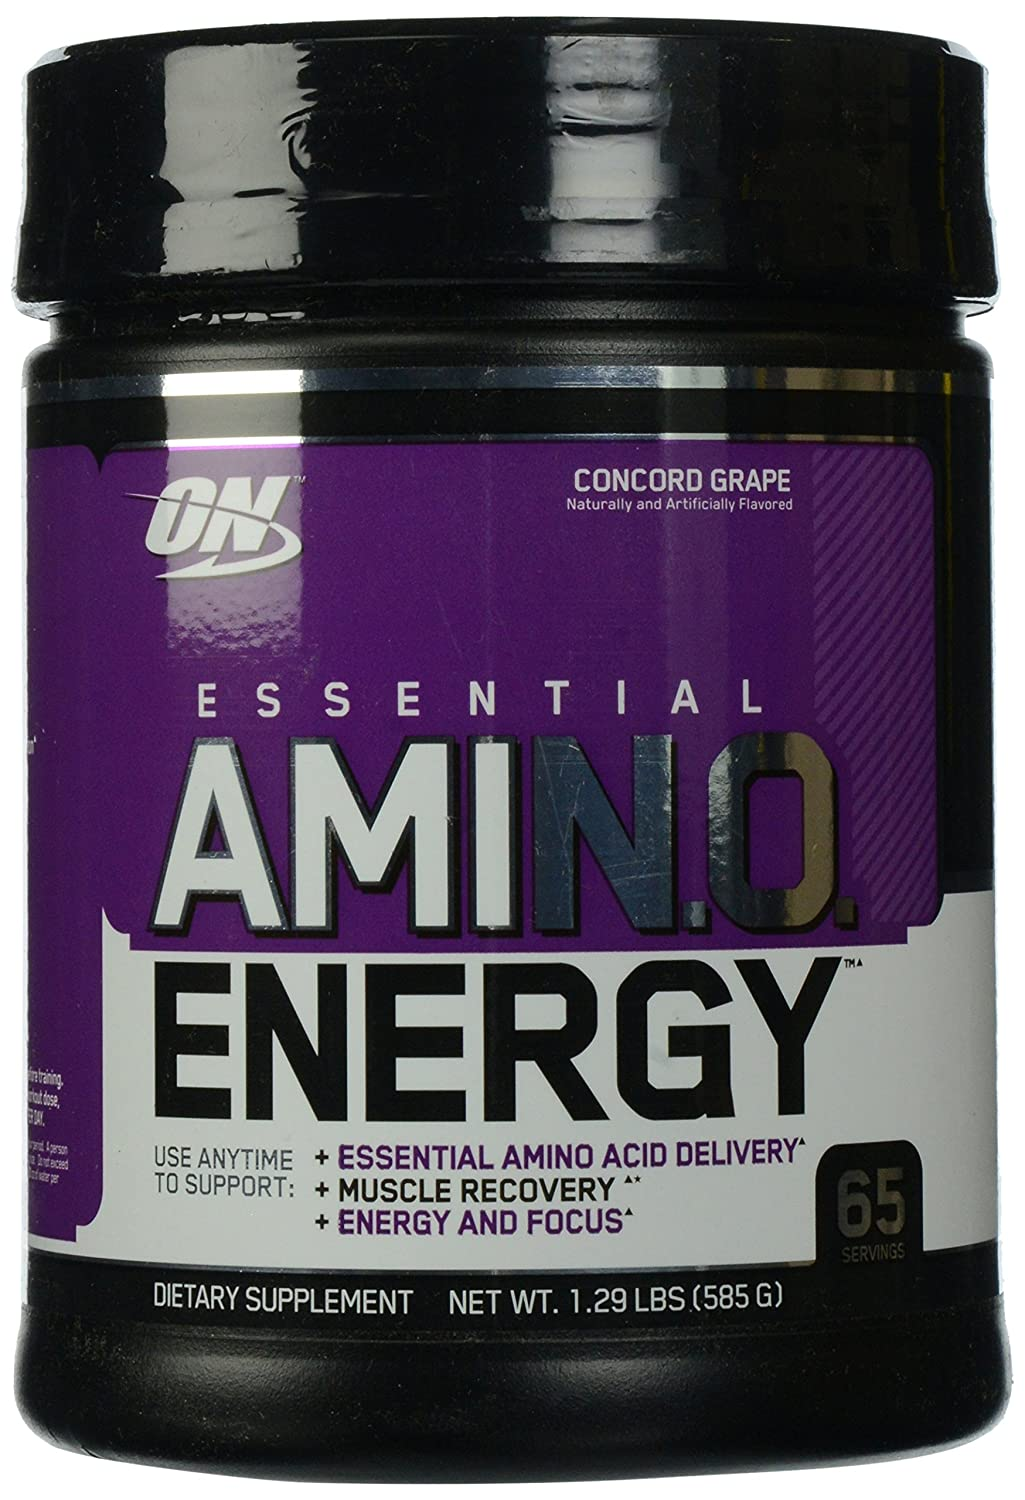 Optimum Nutrition Essential Amino Energy with Green Tea and Green Coffee Extract, Flavor: Concord Grape, 65 Servings